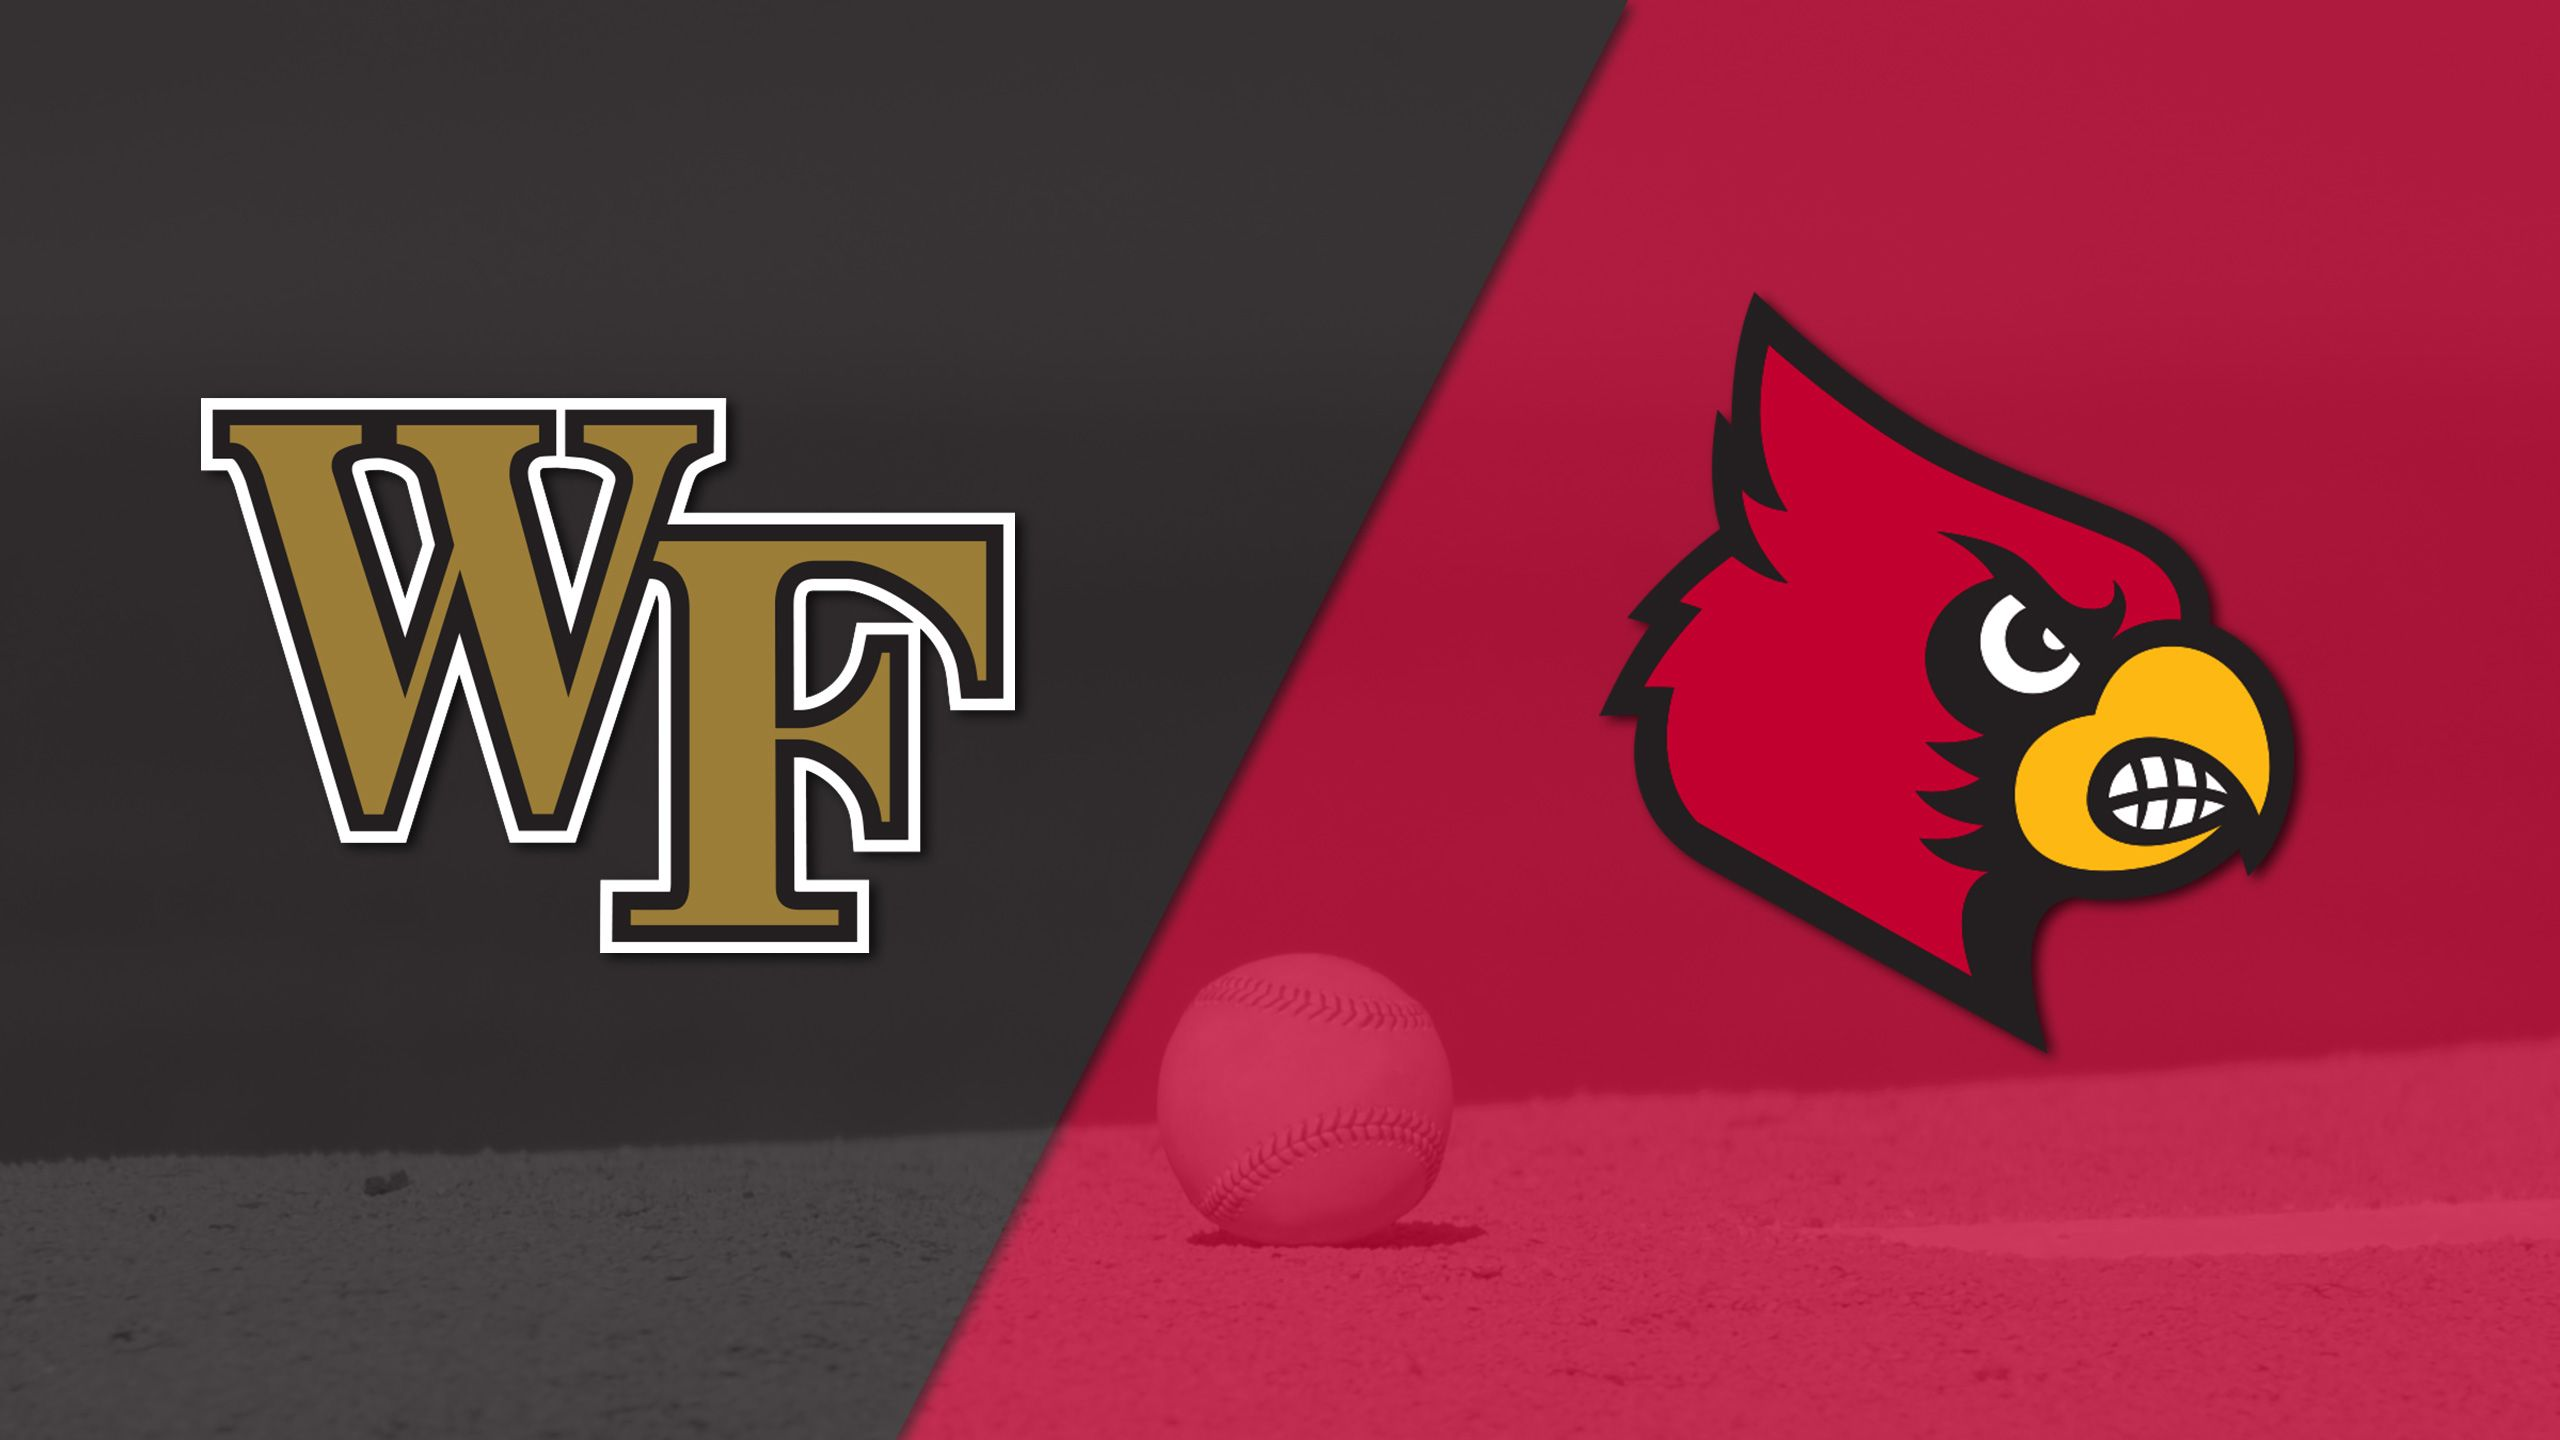 #22 Wake Forest vs. #2 Louisville (Baseball)